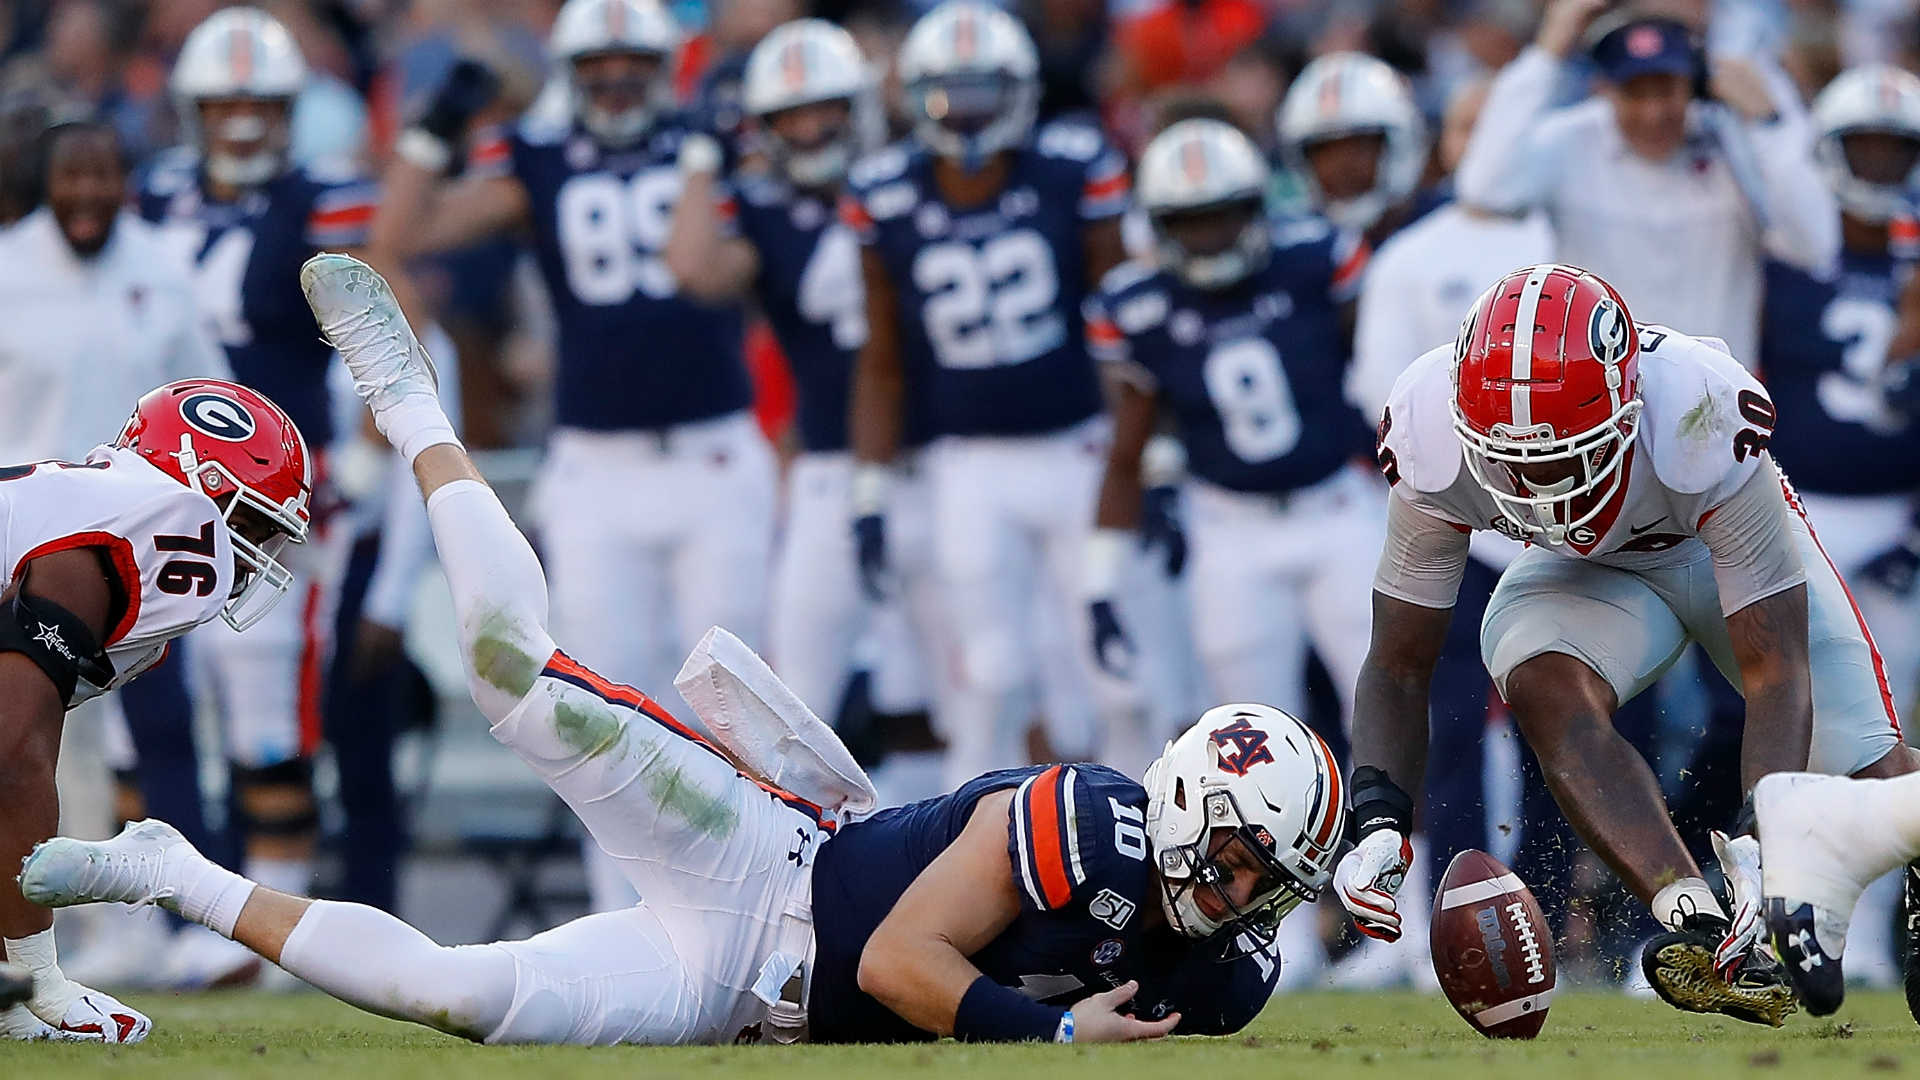 Score Of Georgia Auburn Game Today | gamewithplay.com